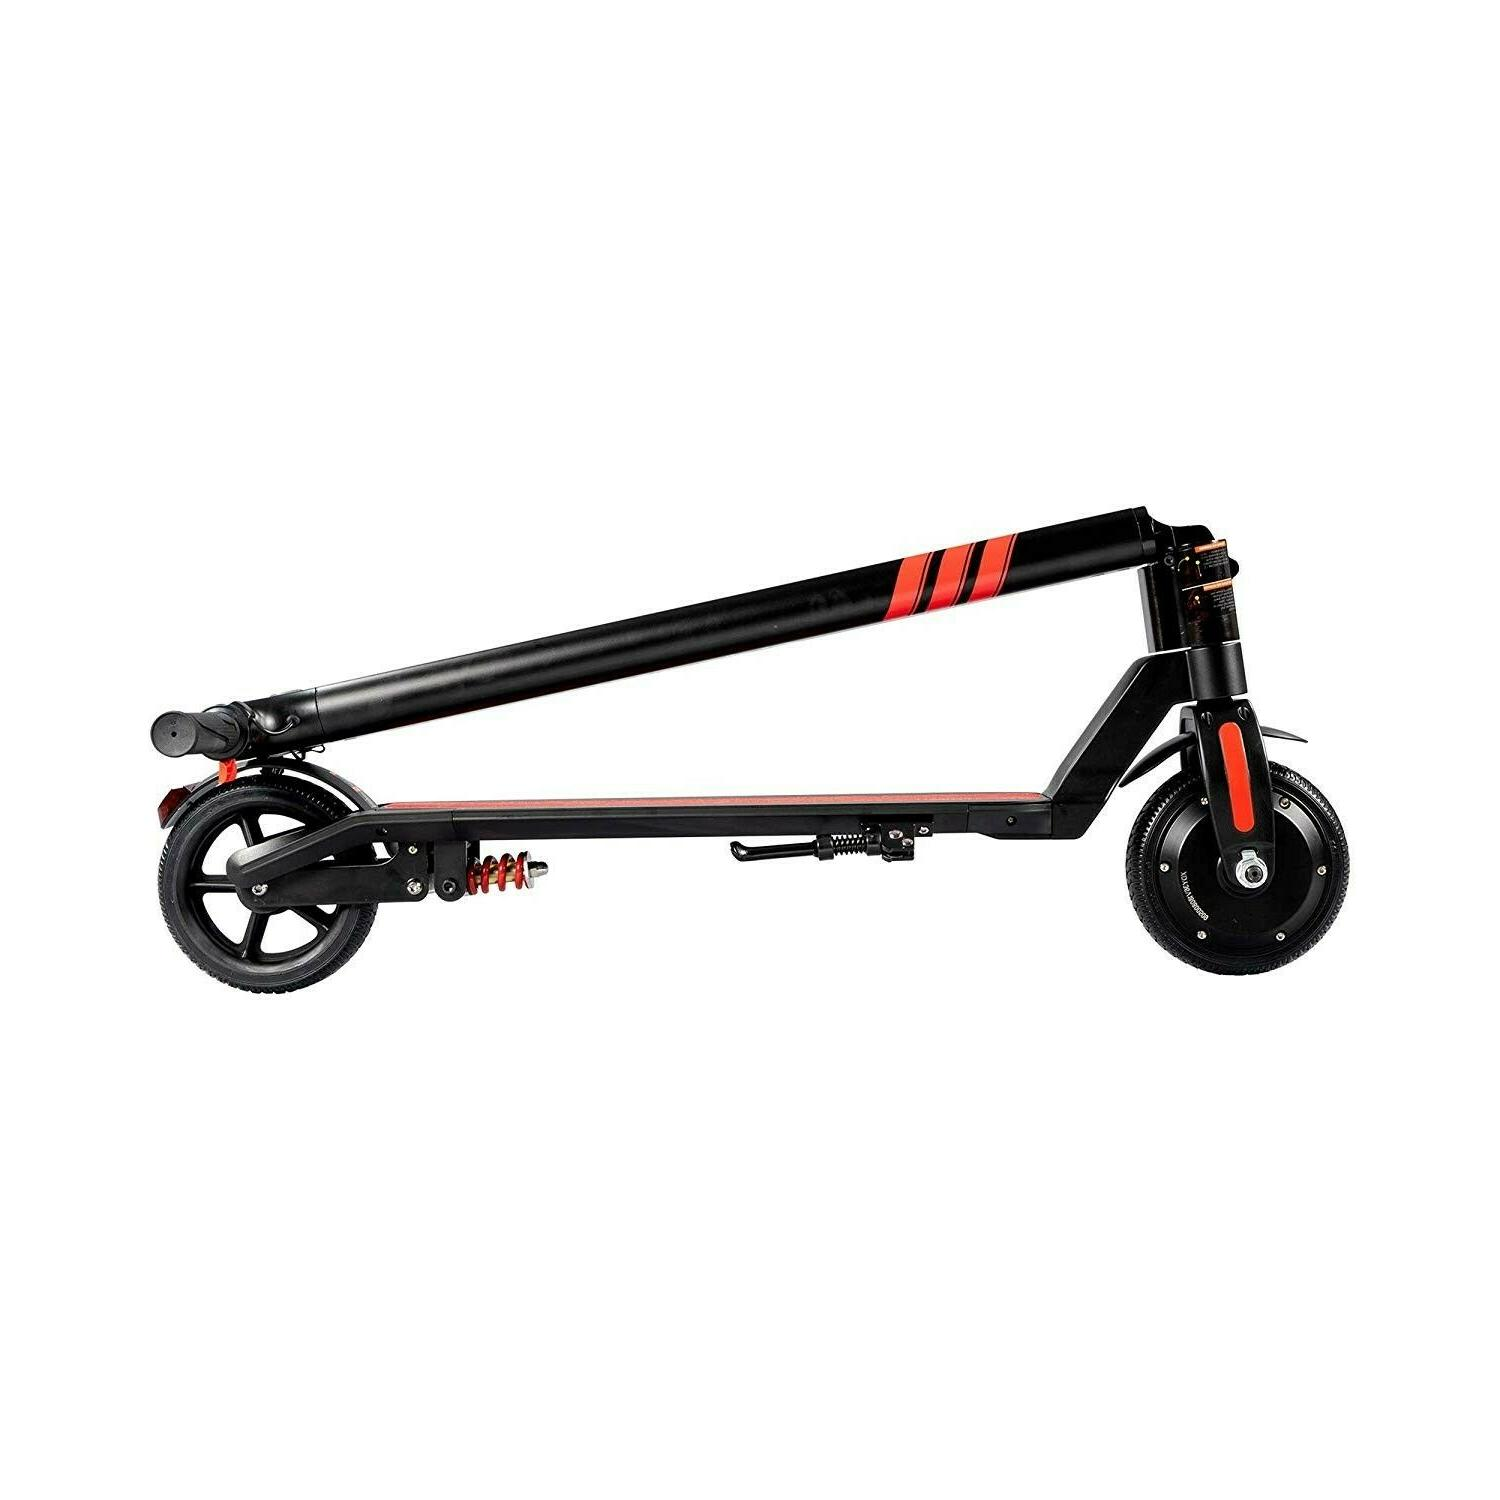 Swagger Pro Scooter, 14.2mi Motor